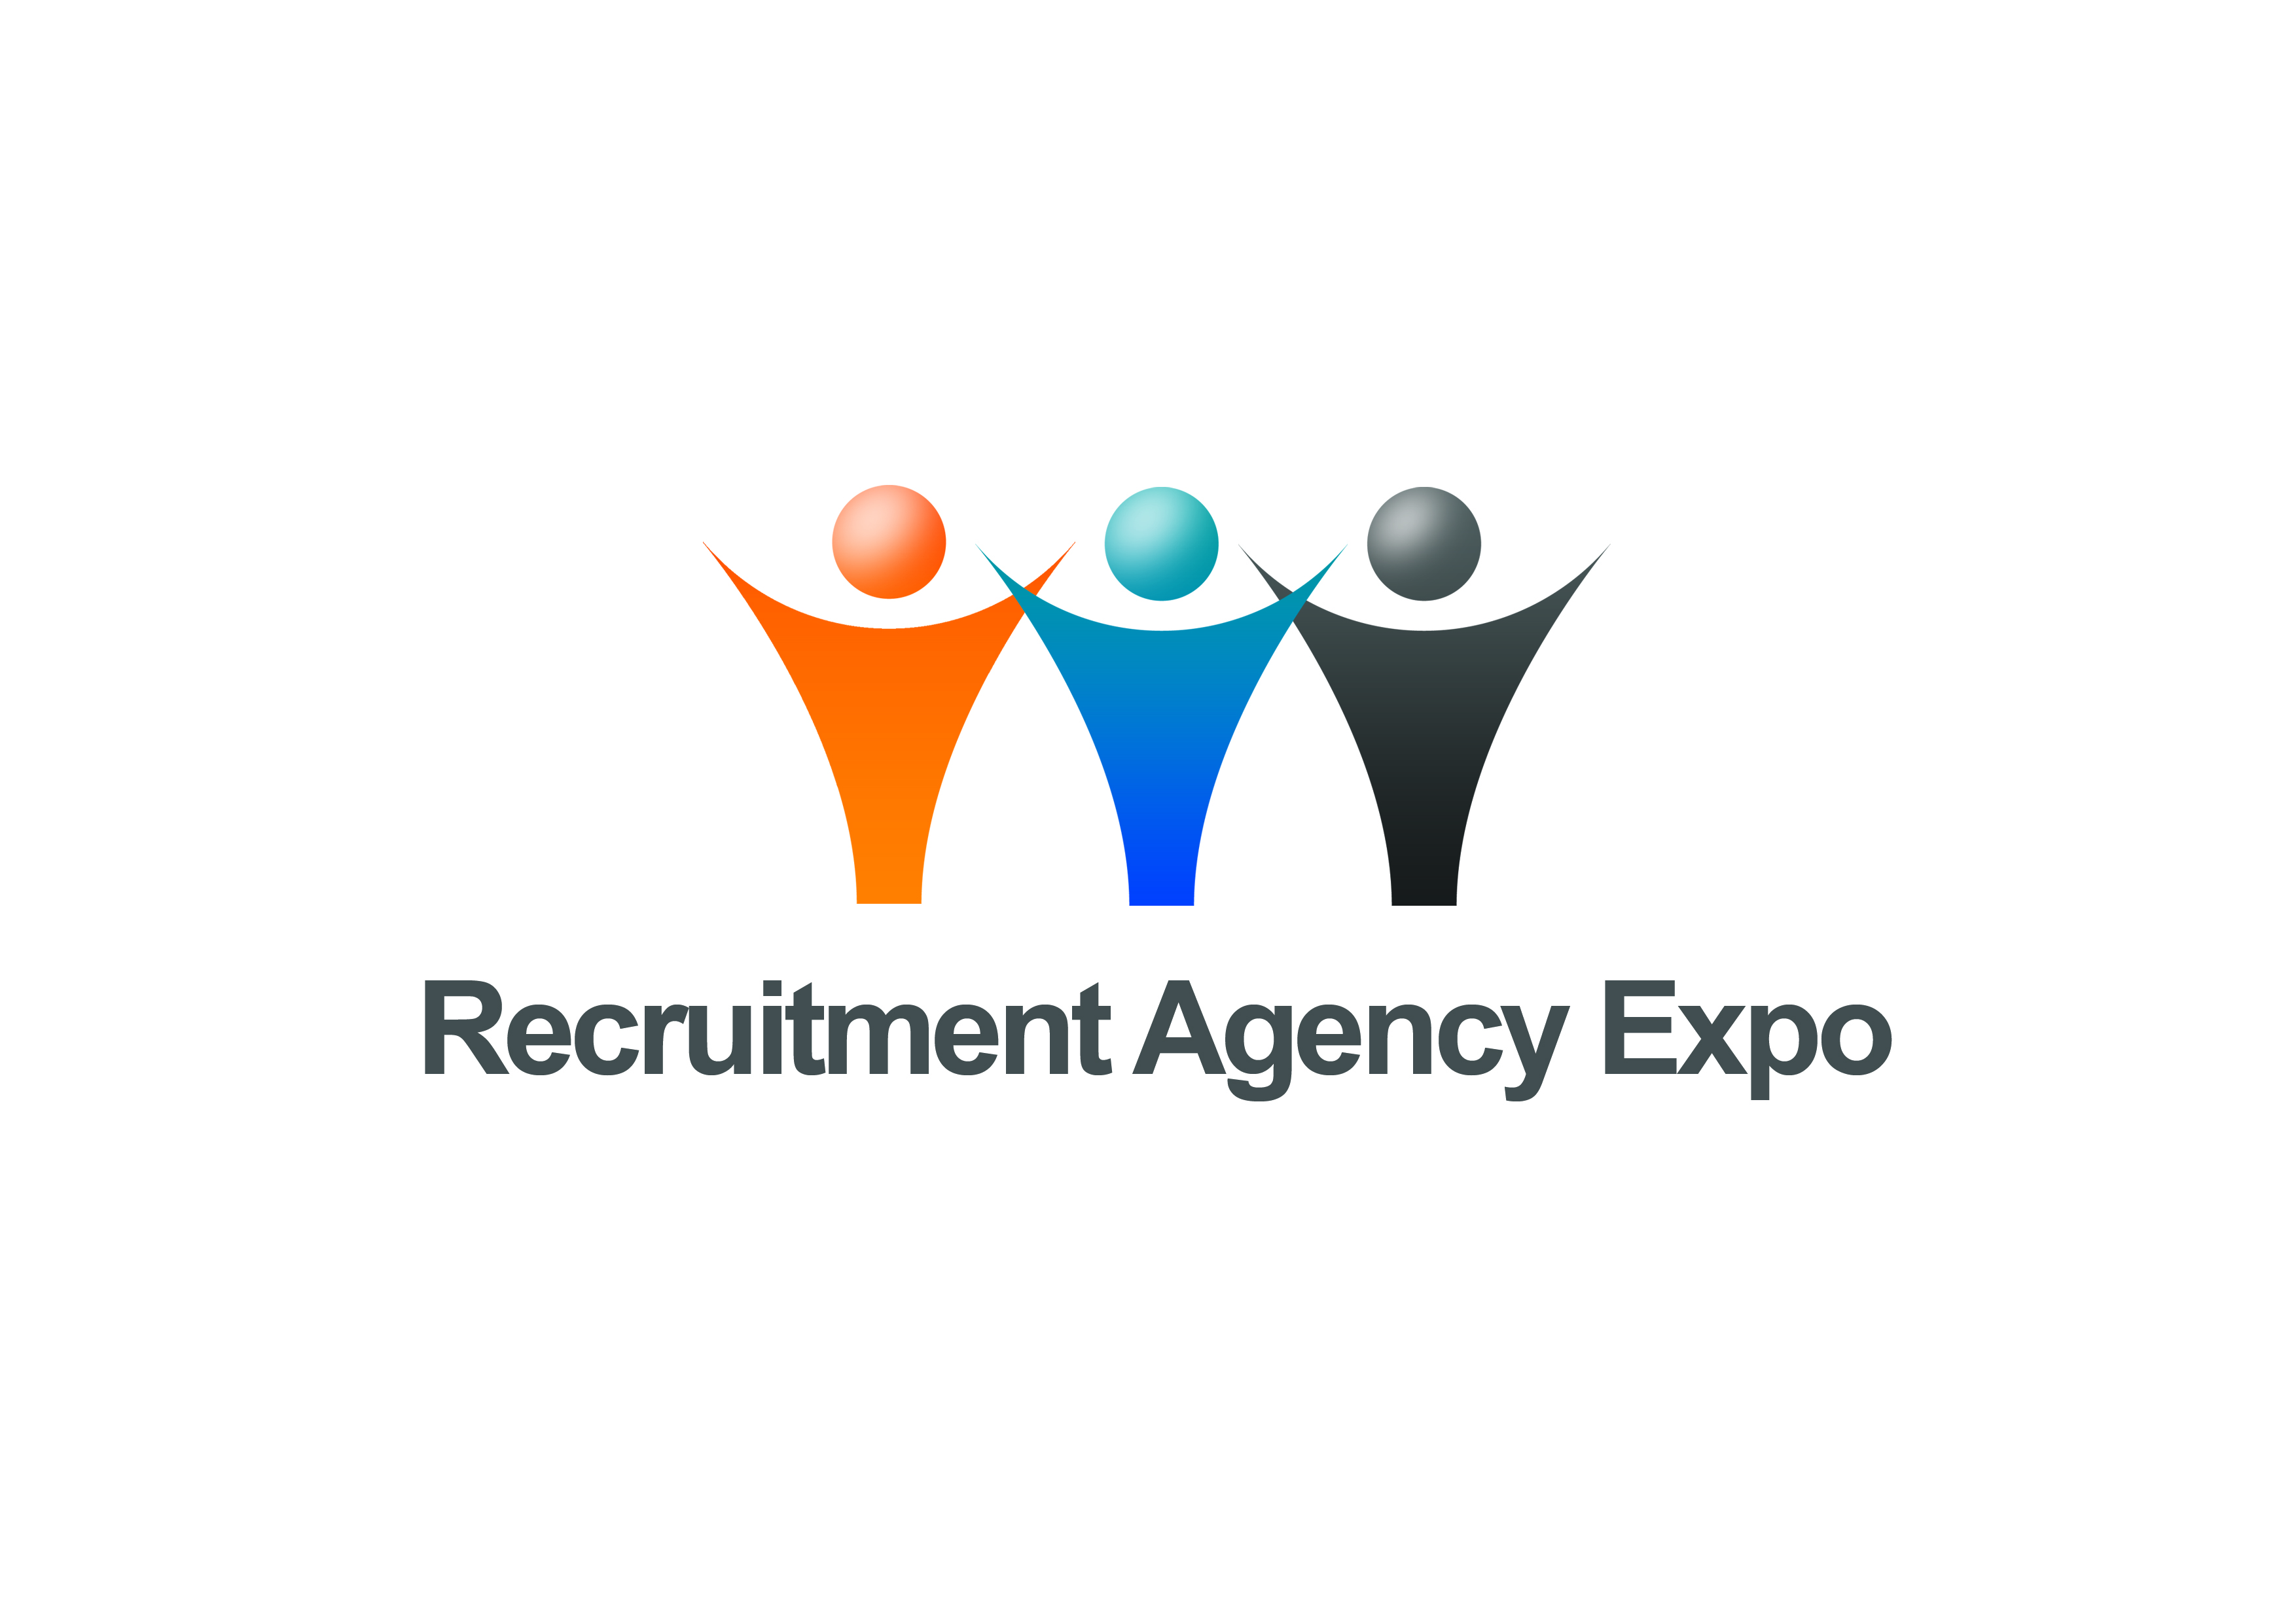 22 professional logo designs for recruitment agency expo a